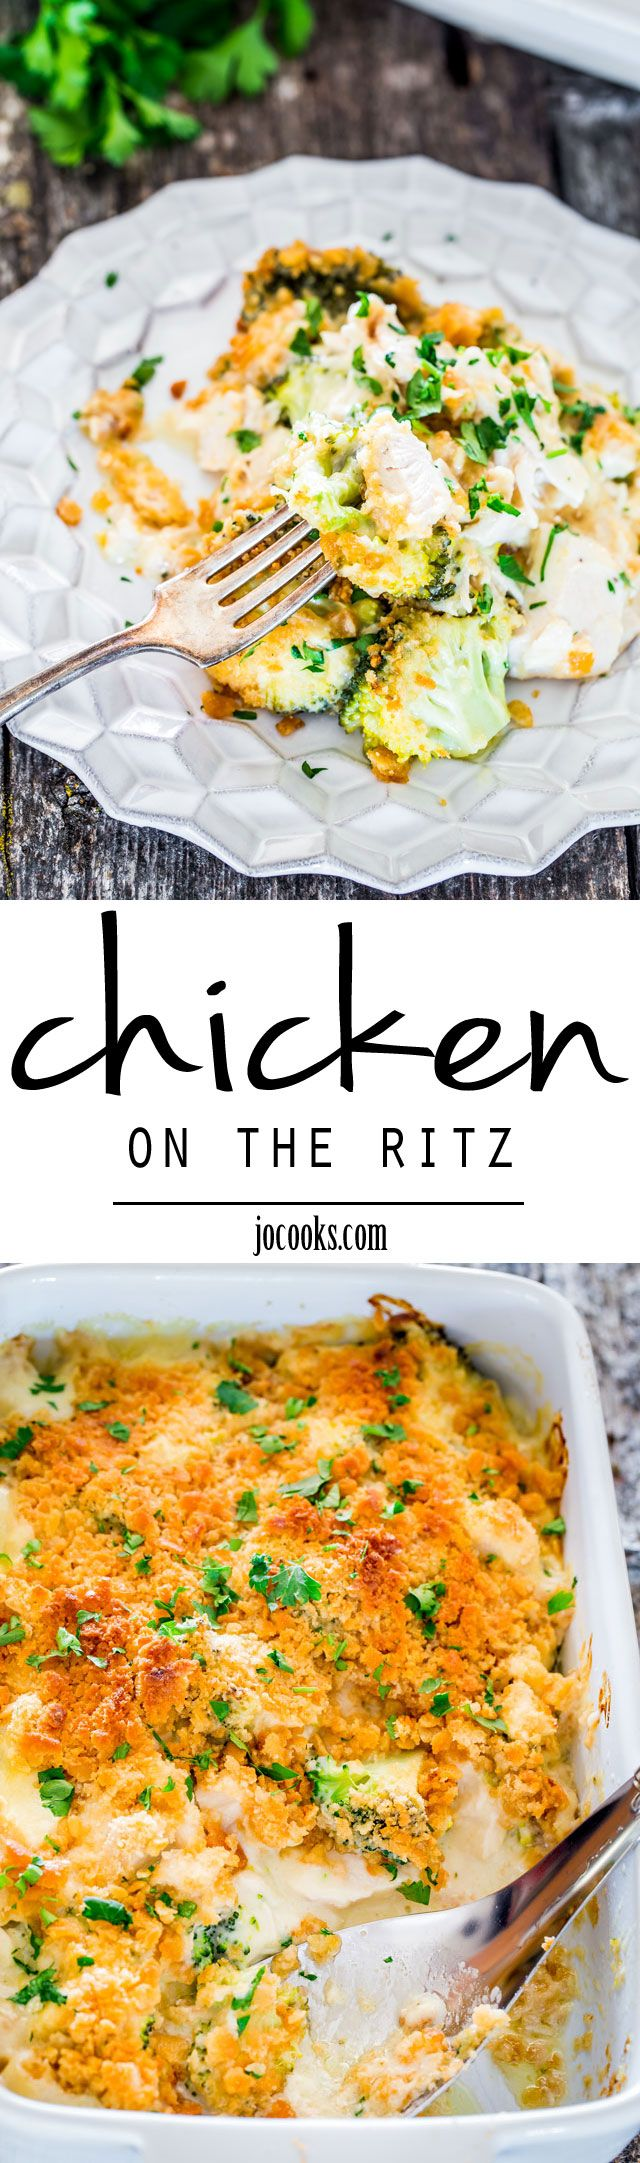 Chicken on the Ritz - this casserole couldn't get any easier made with ingredients you're bound to have on hand. This casserole is perfect for a busy night and packs lots of flavor.